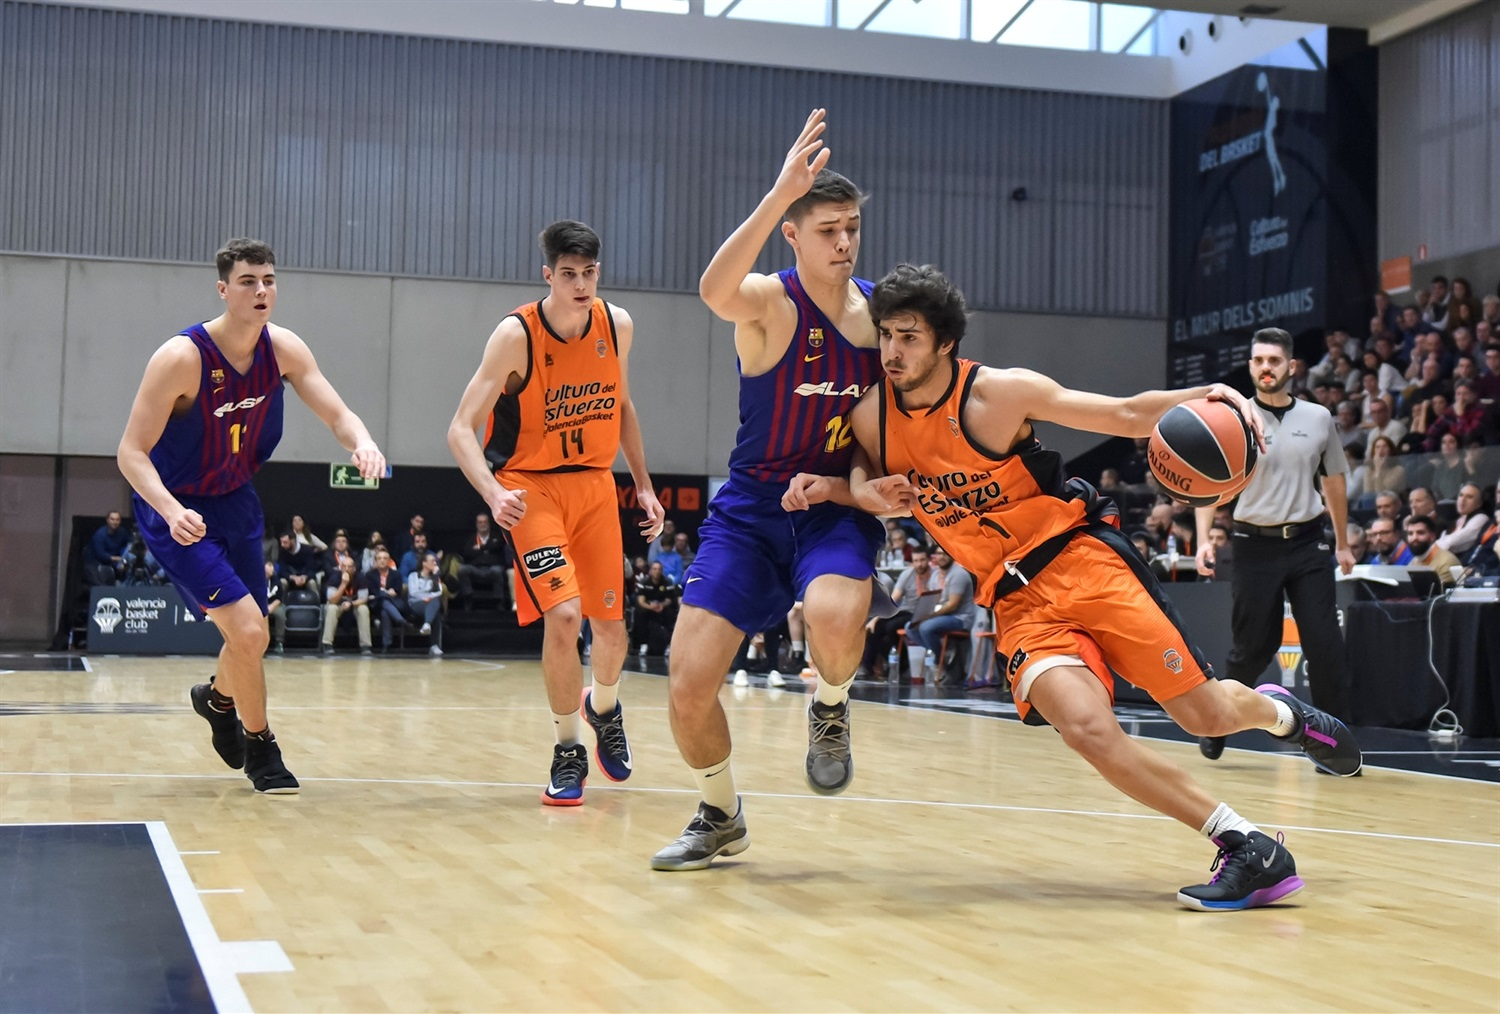 Alfonso Jose Ribera - U18 FC Barcelona Lassa (photo Miguel Angel Polo - Valencia) - JT18